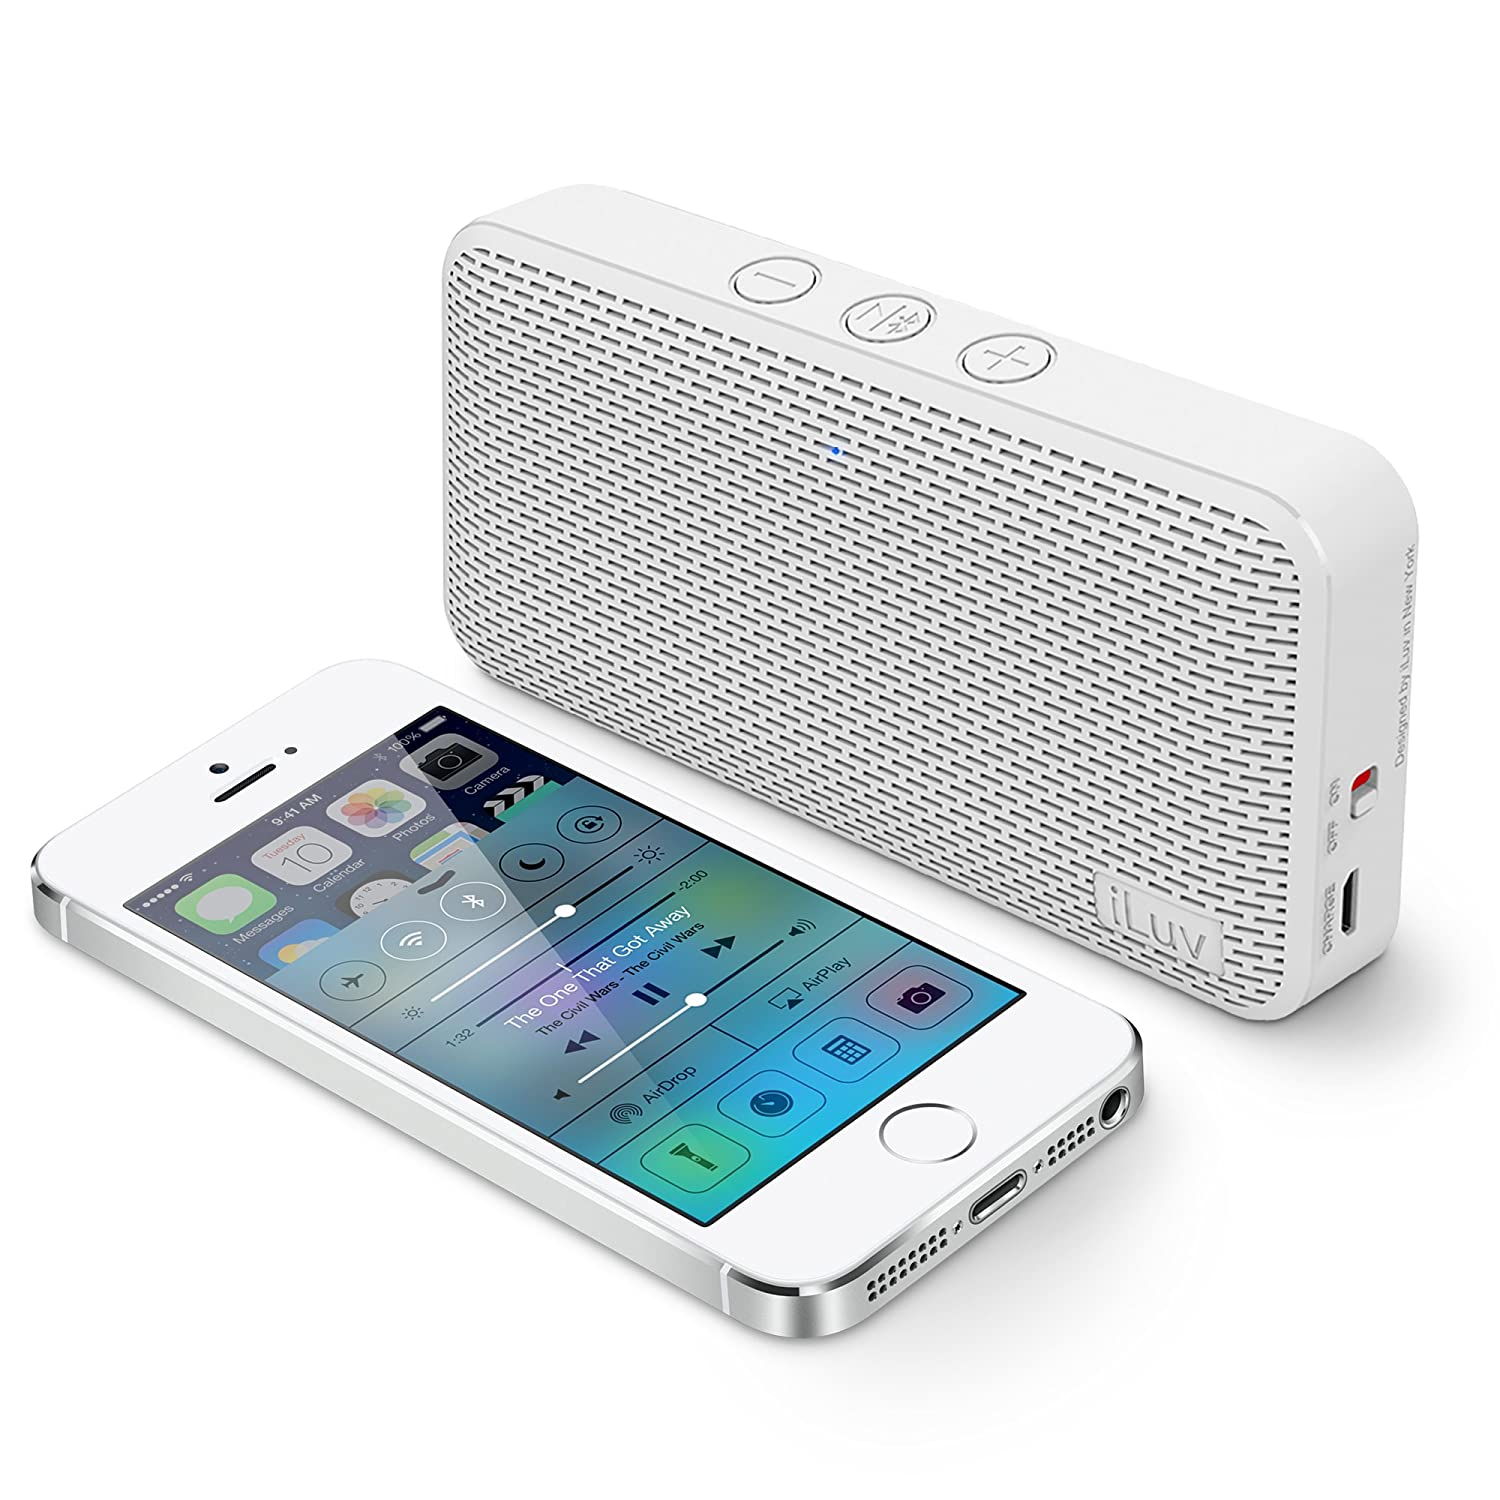 Iluv Aud MiniTM Smart 6 Slim Portable Weather-resistant App-enabled Fm Radio and Bluetooth® Speaker for Iphone 6/6 Plus, 5s/5c/5, 4s; Samsung Galaxy S5, S4, S3, Note 4, Note 3; Lg®; Htc®; Ipad®; Ipad MiniTM and Other Bluetooth-compatible Smartphones and